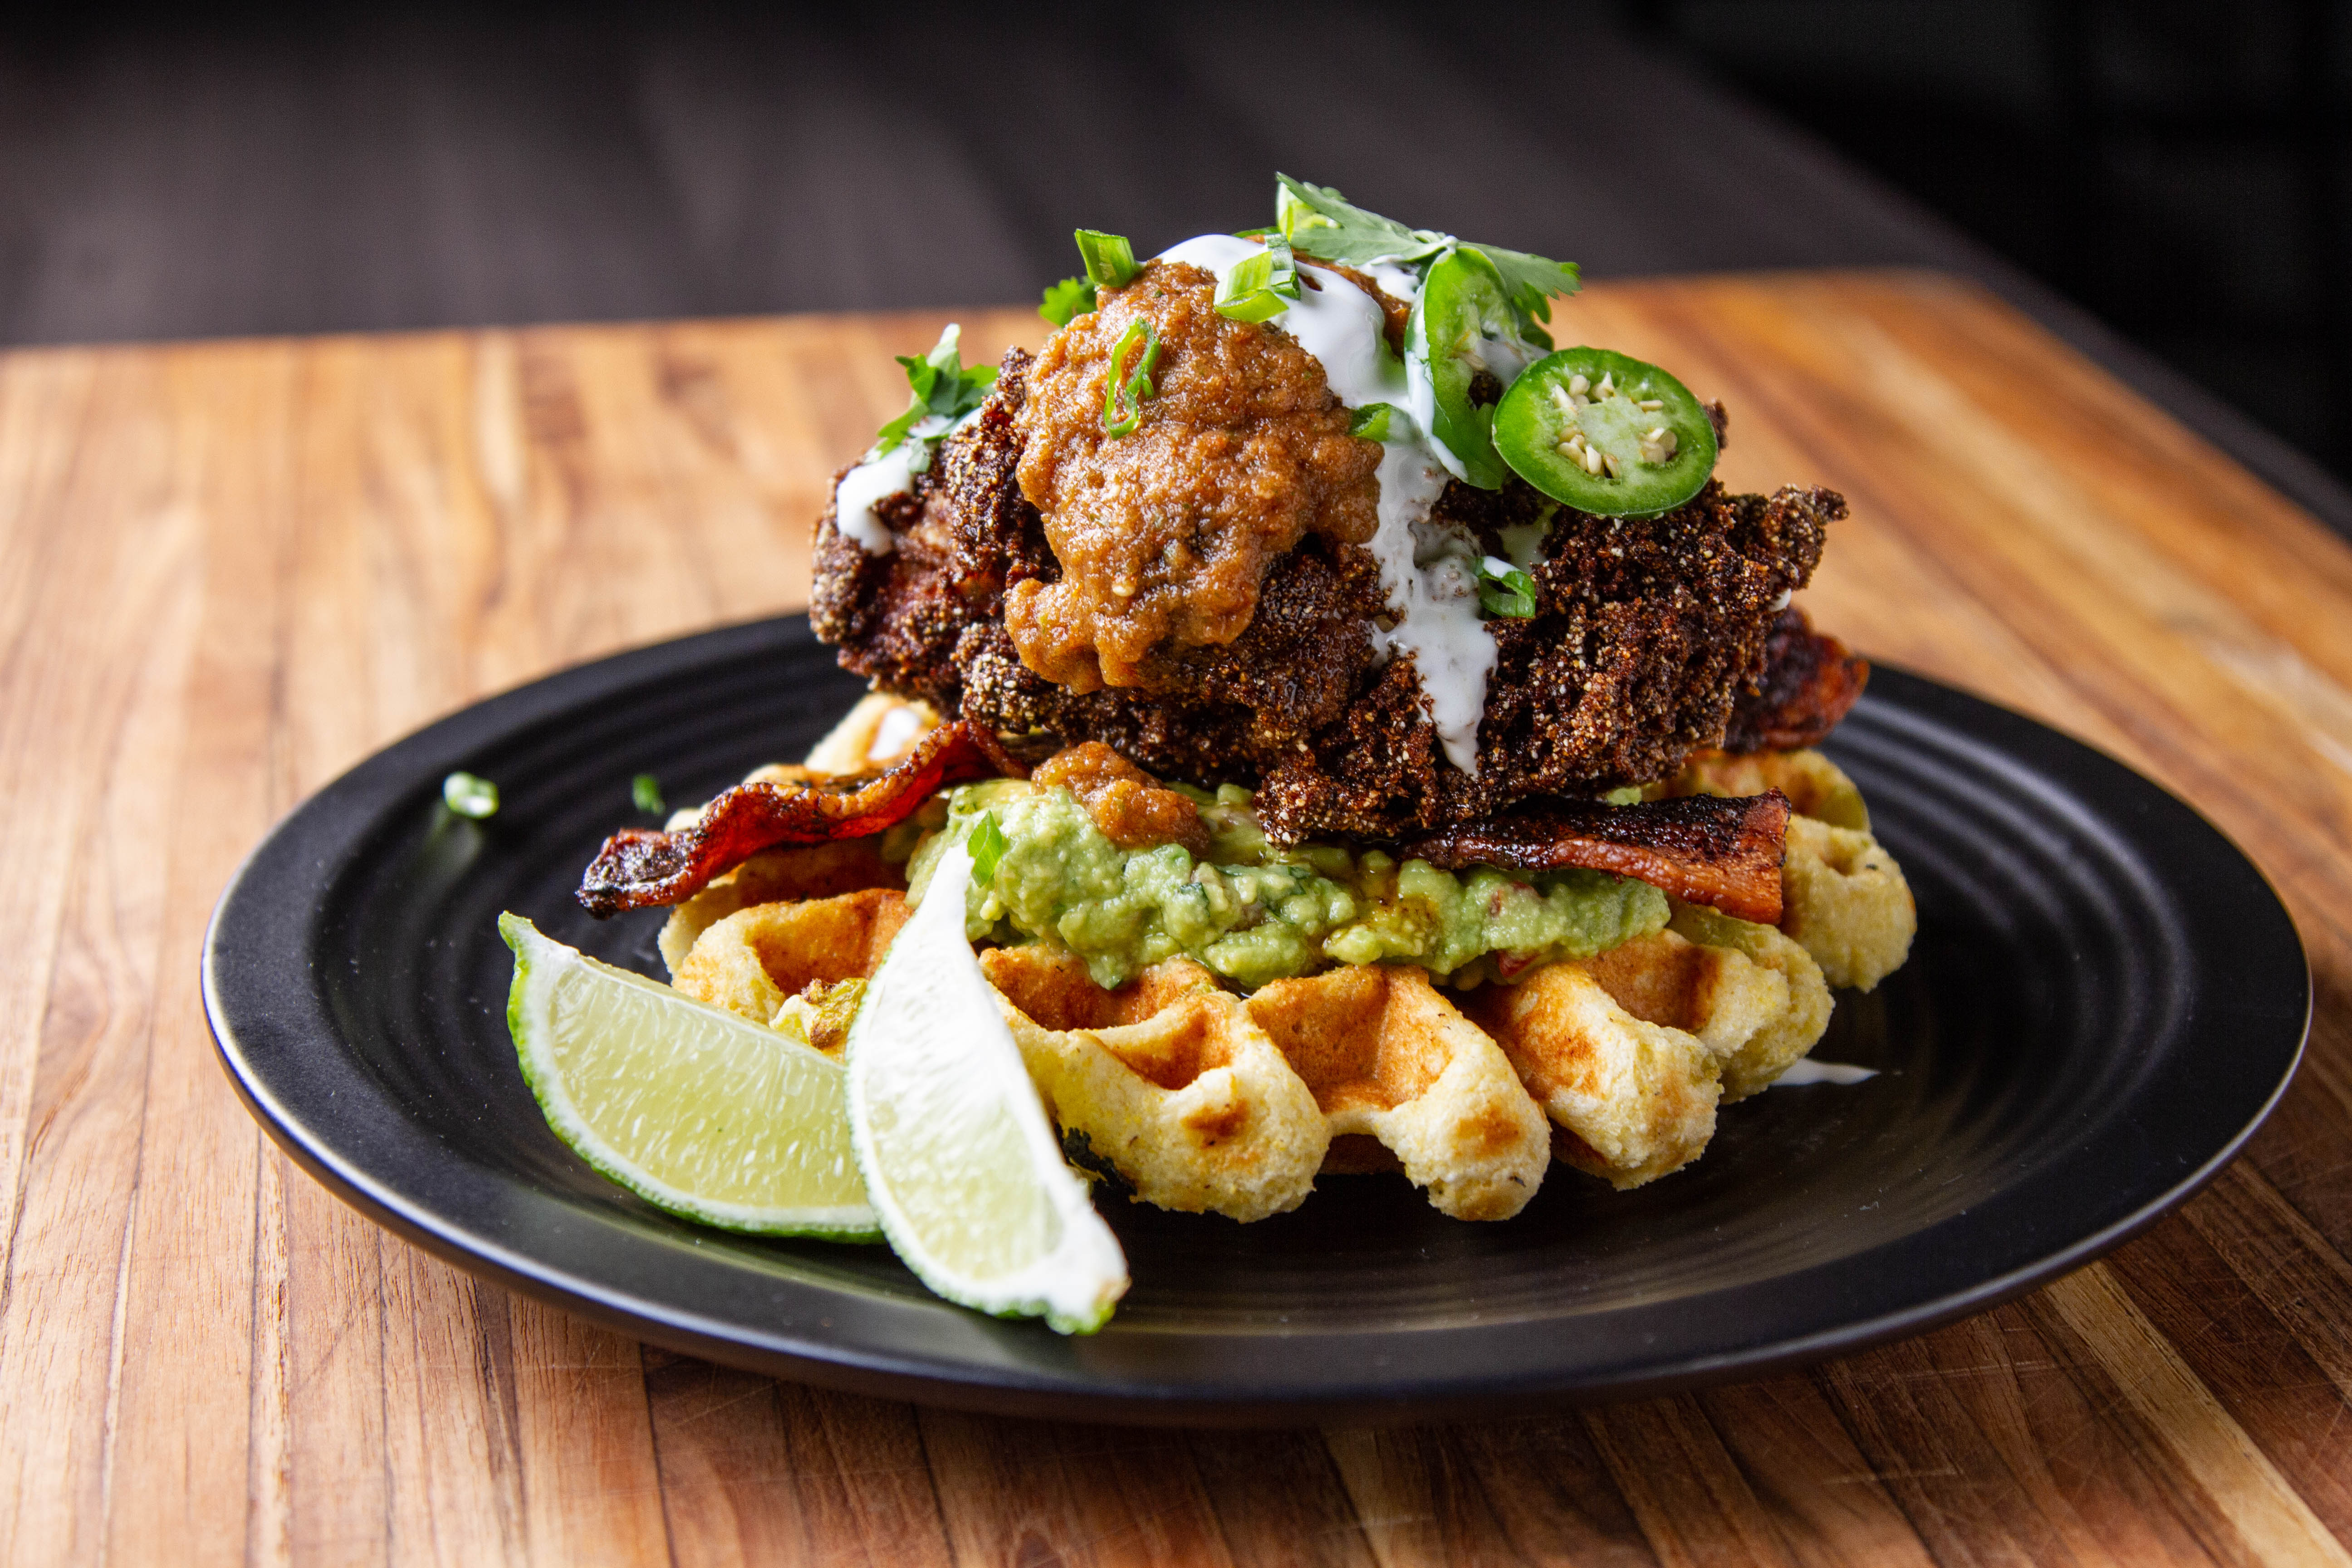 Chicken and waffles from batter to iron